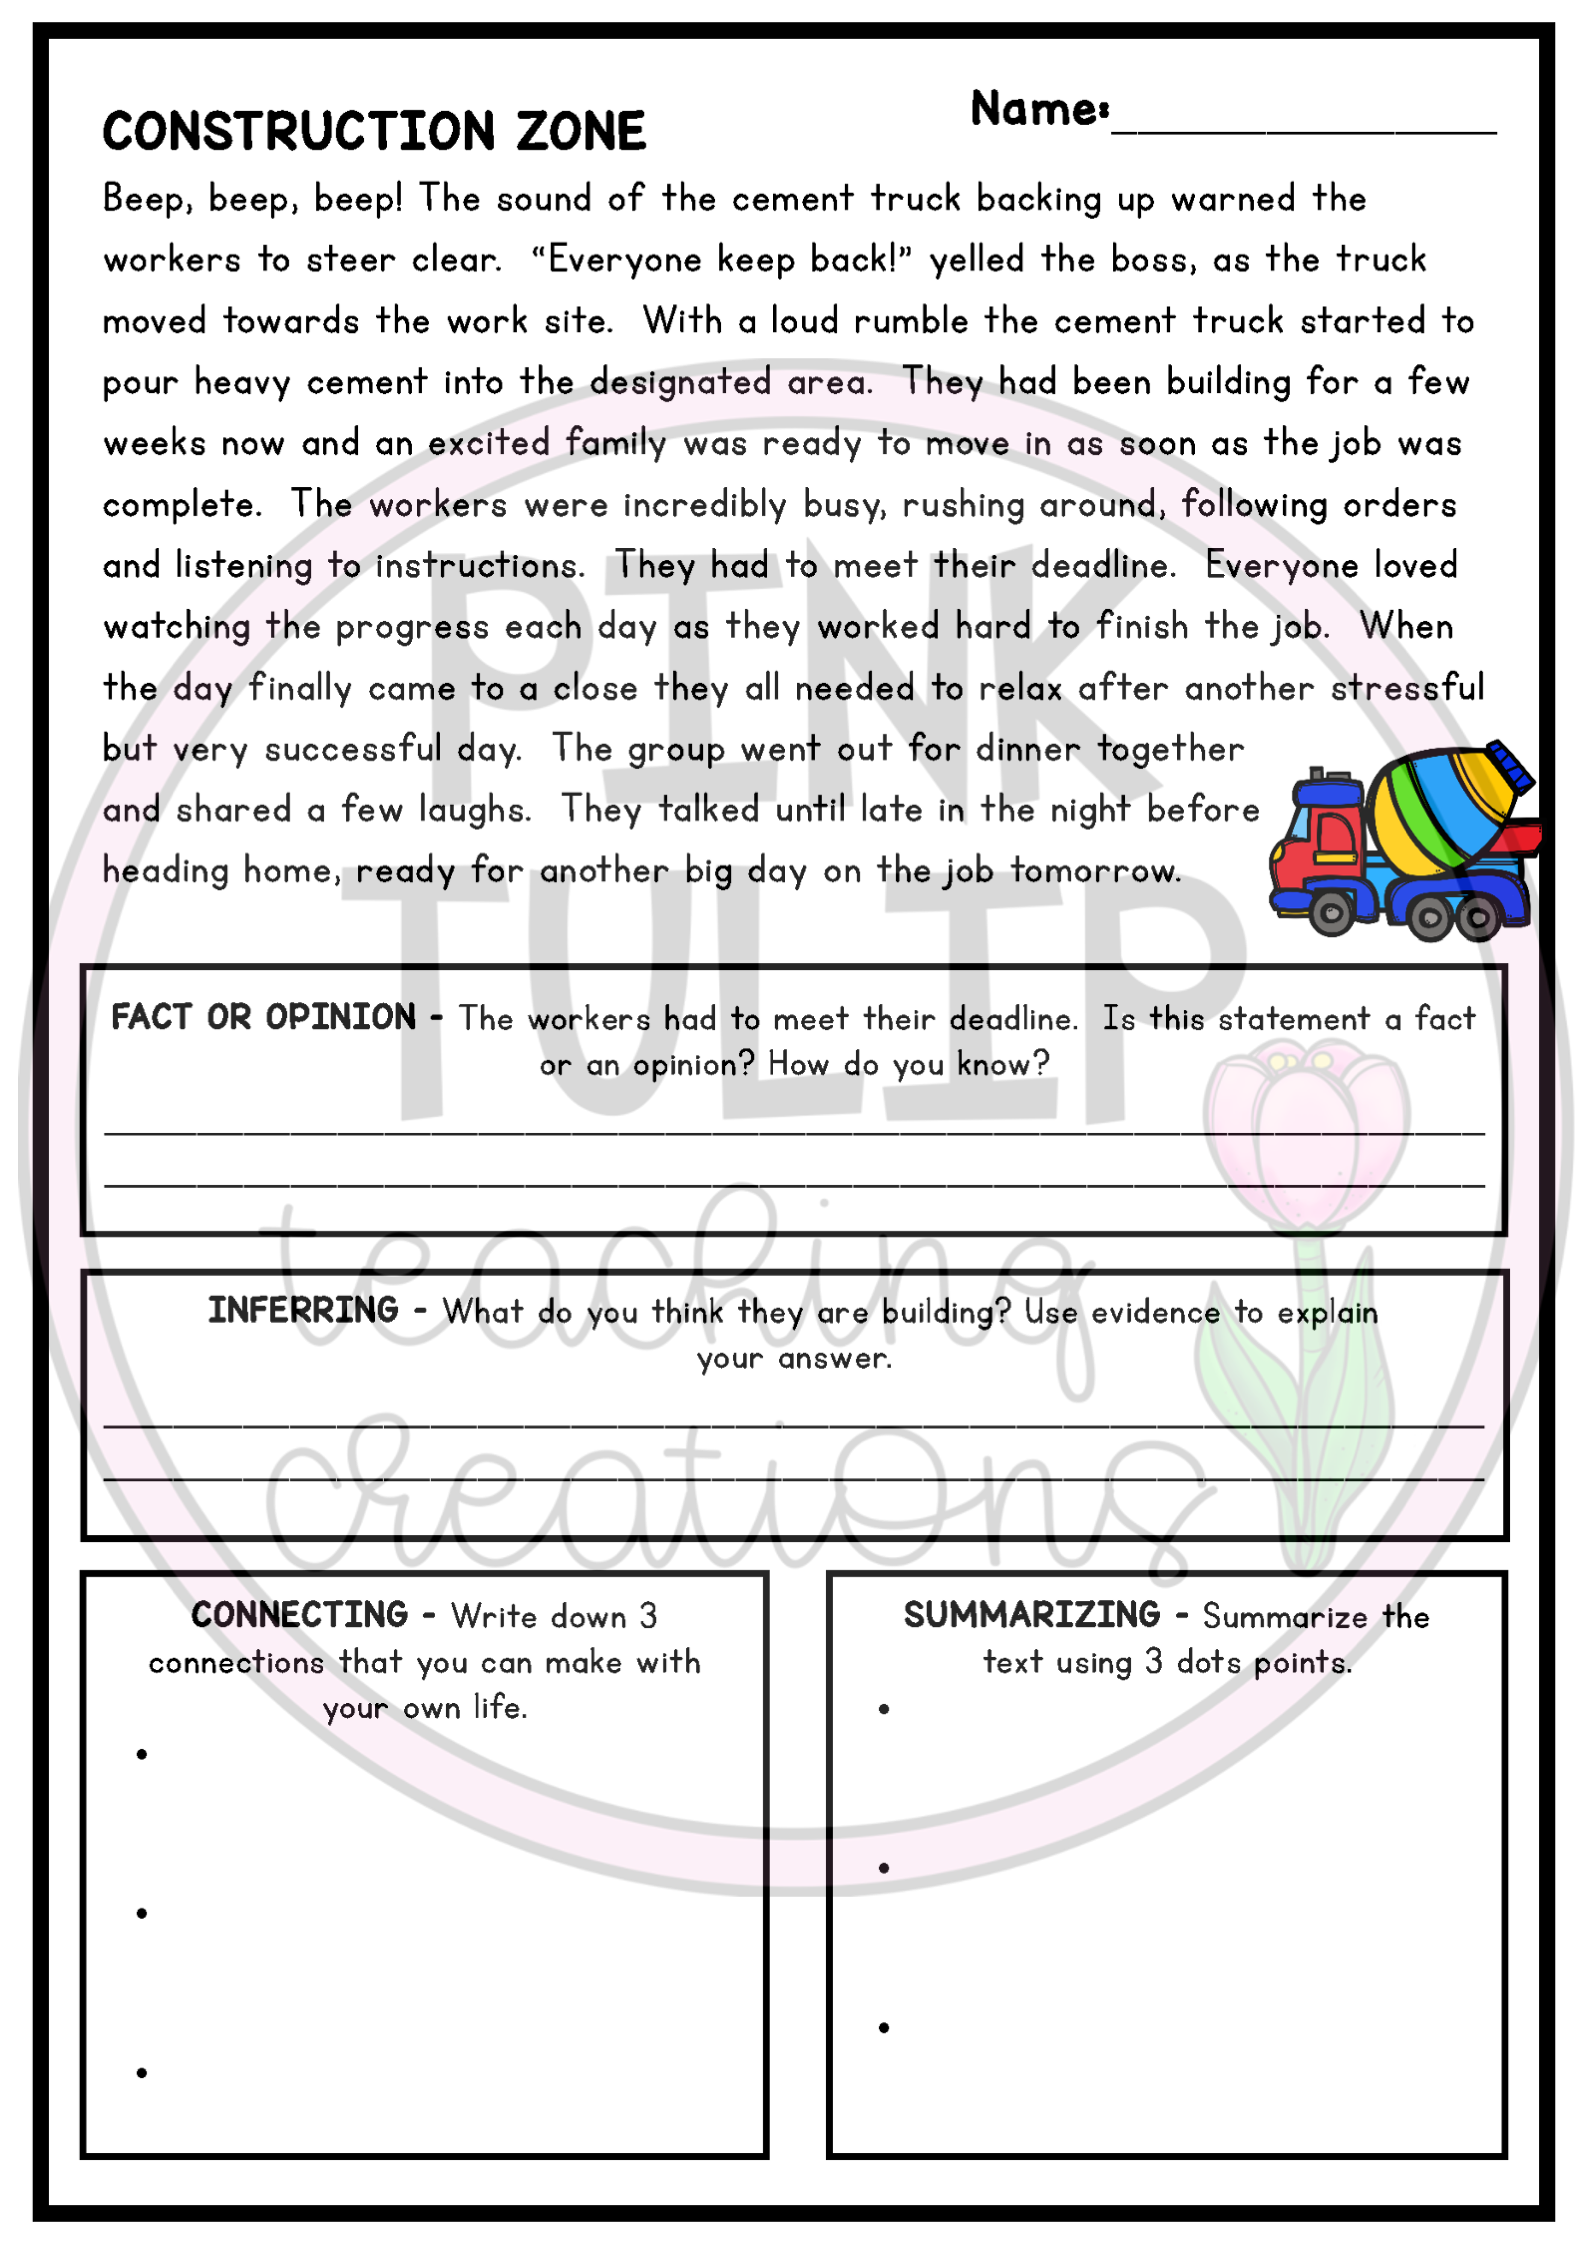 1 Comprehension Deals Reading Strategies Set 8 Reading Strategies Reading Comprehension Resources Teachers Learning [ 2249 x 1579 Pixel ]